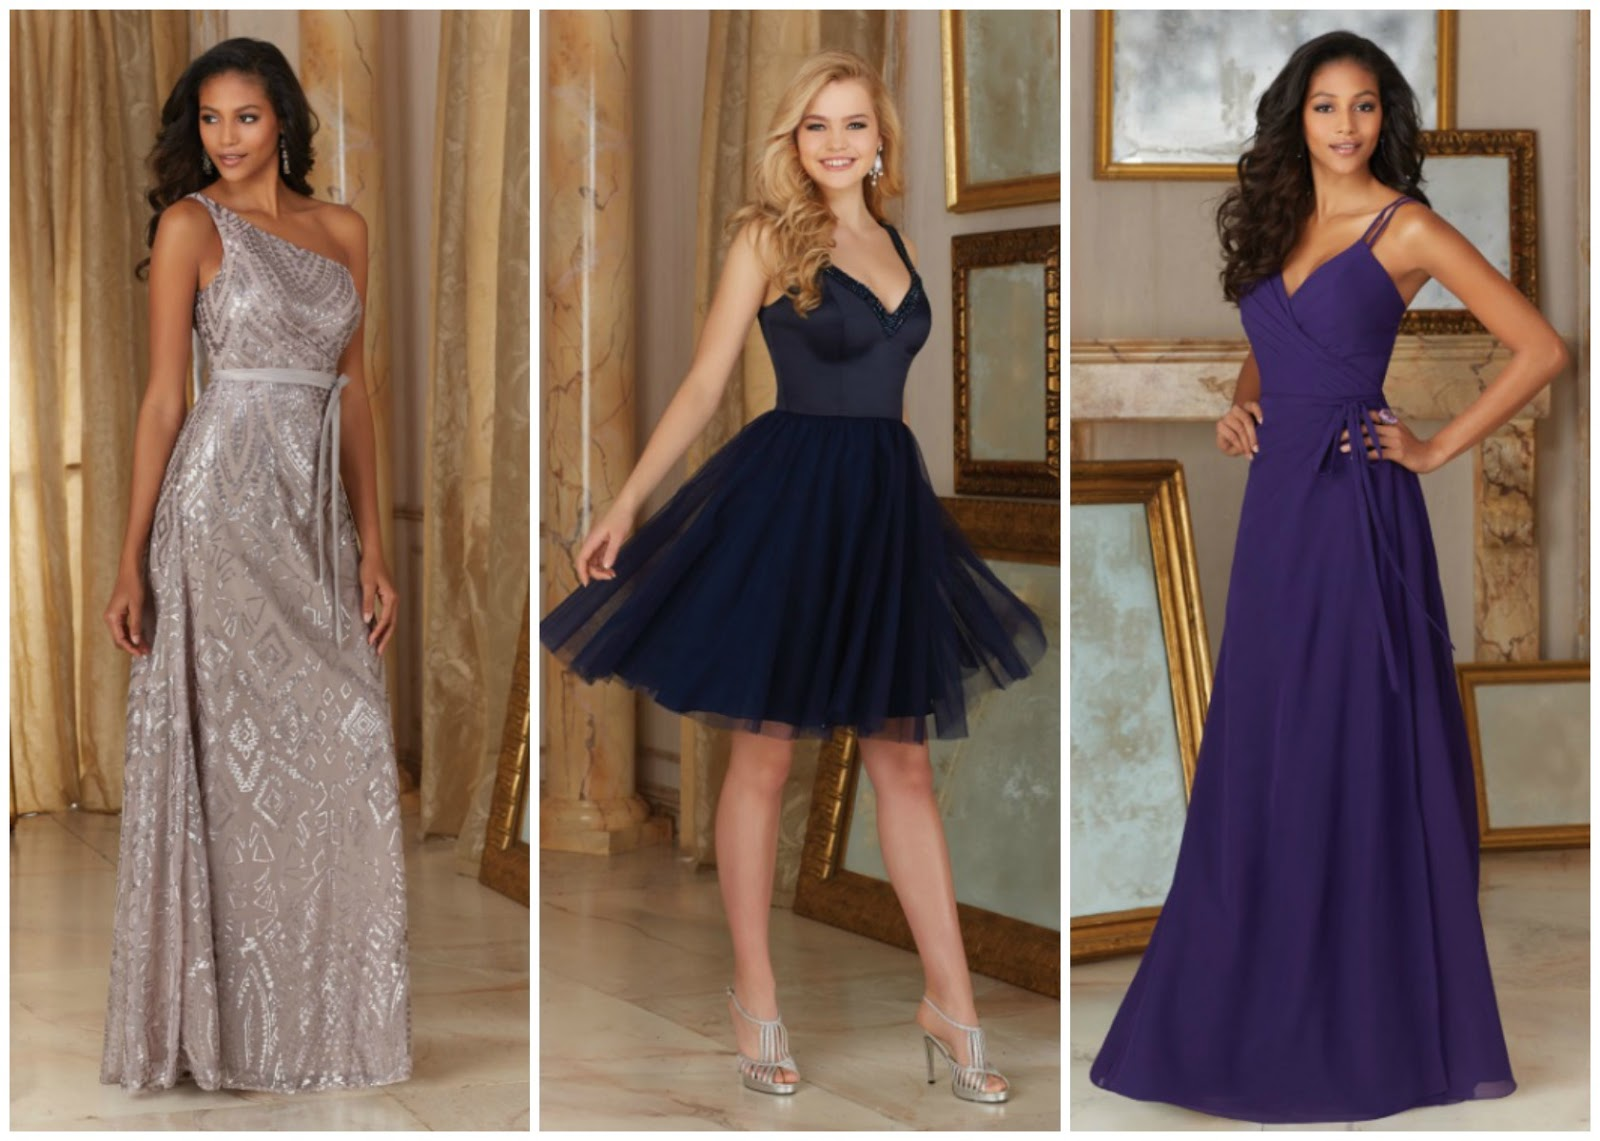 Brides of america online store august 2016 to find your dream wedding dress early in the planning process and once you accomplish that its time to find fashions for your lovely bridesmaids ombrellifo Images